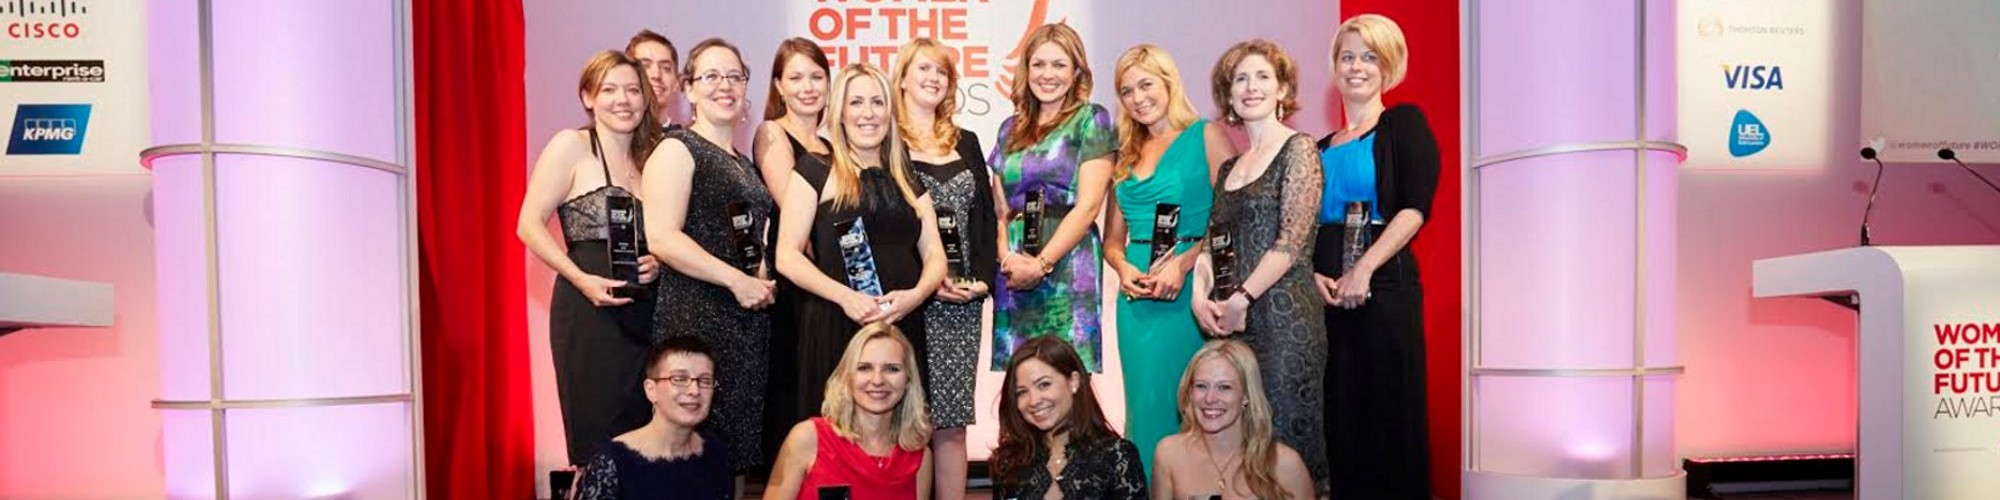 ICG Astronomer wins Women of the Future award 2014